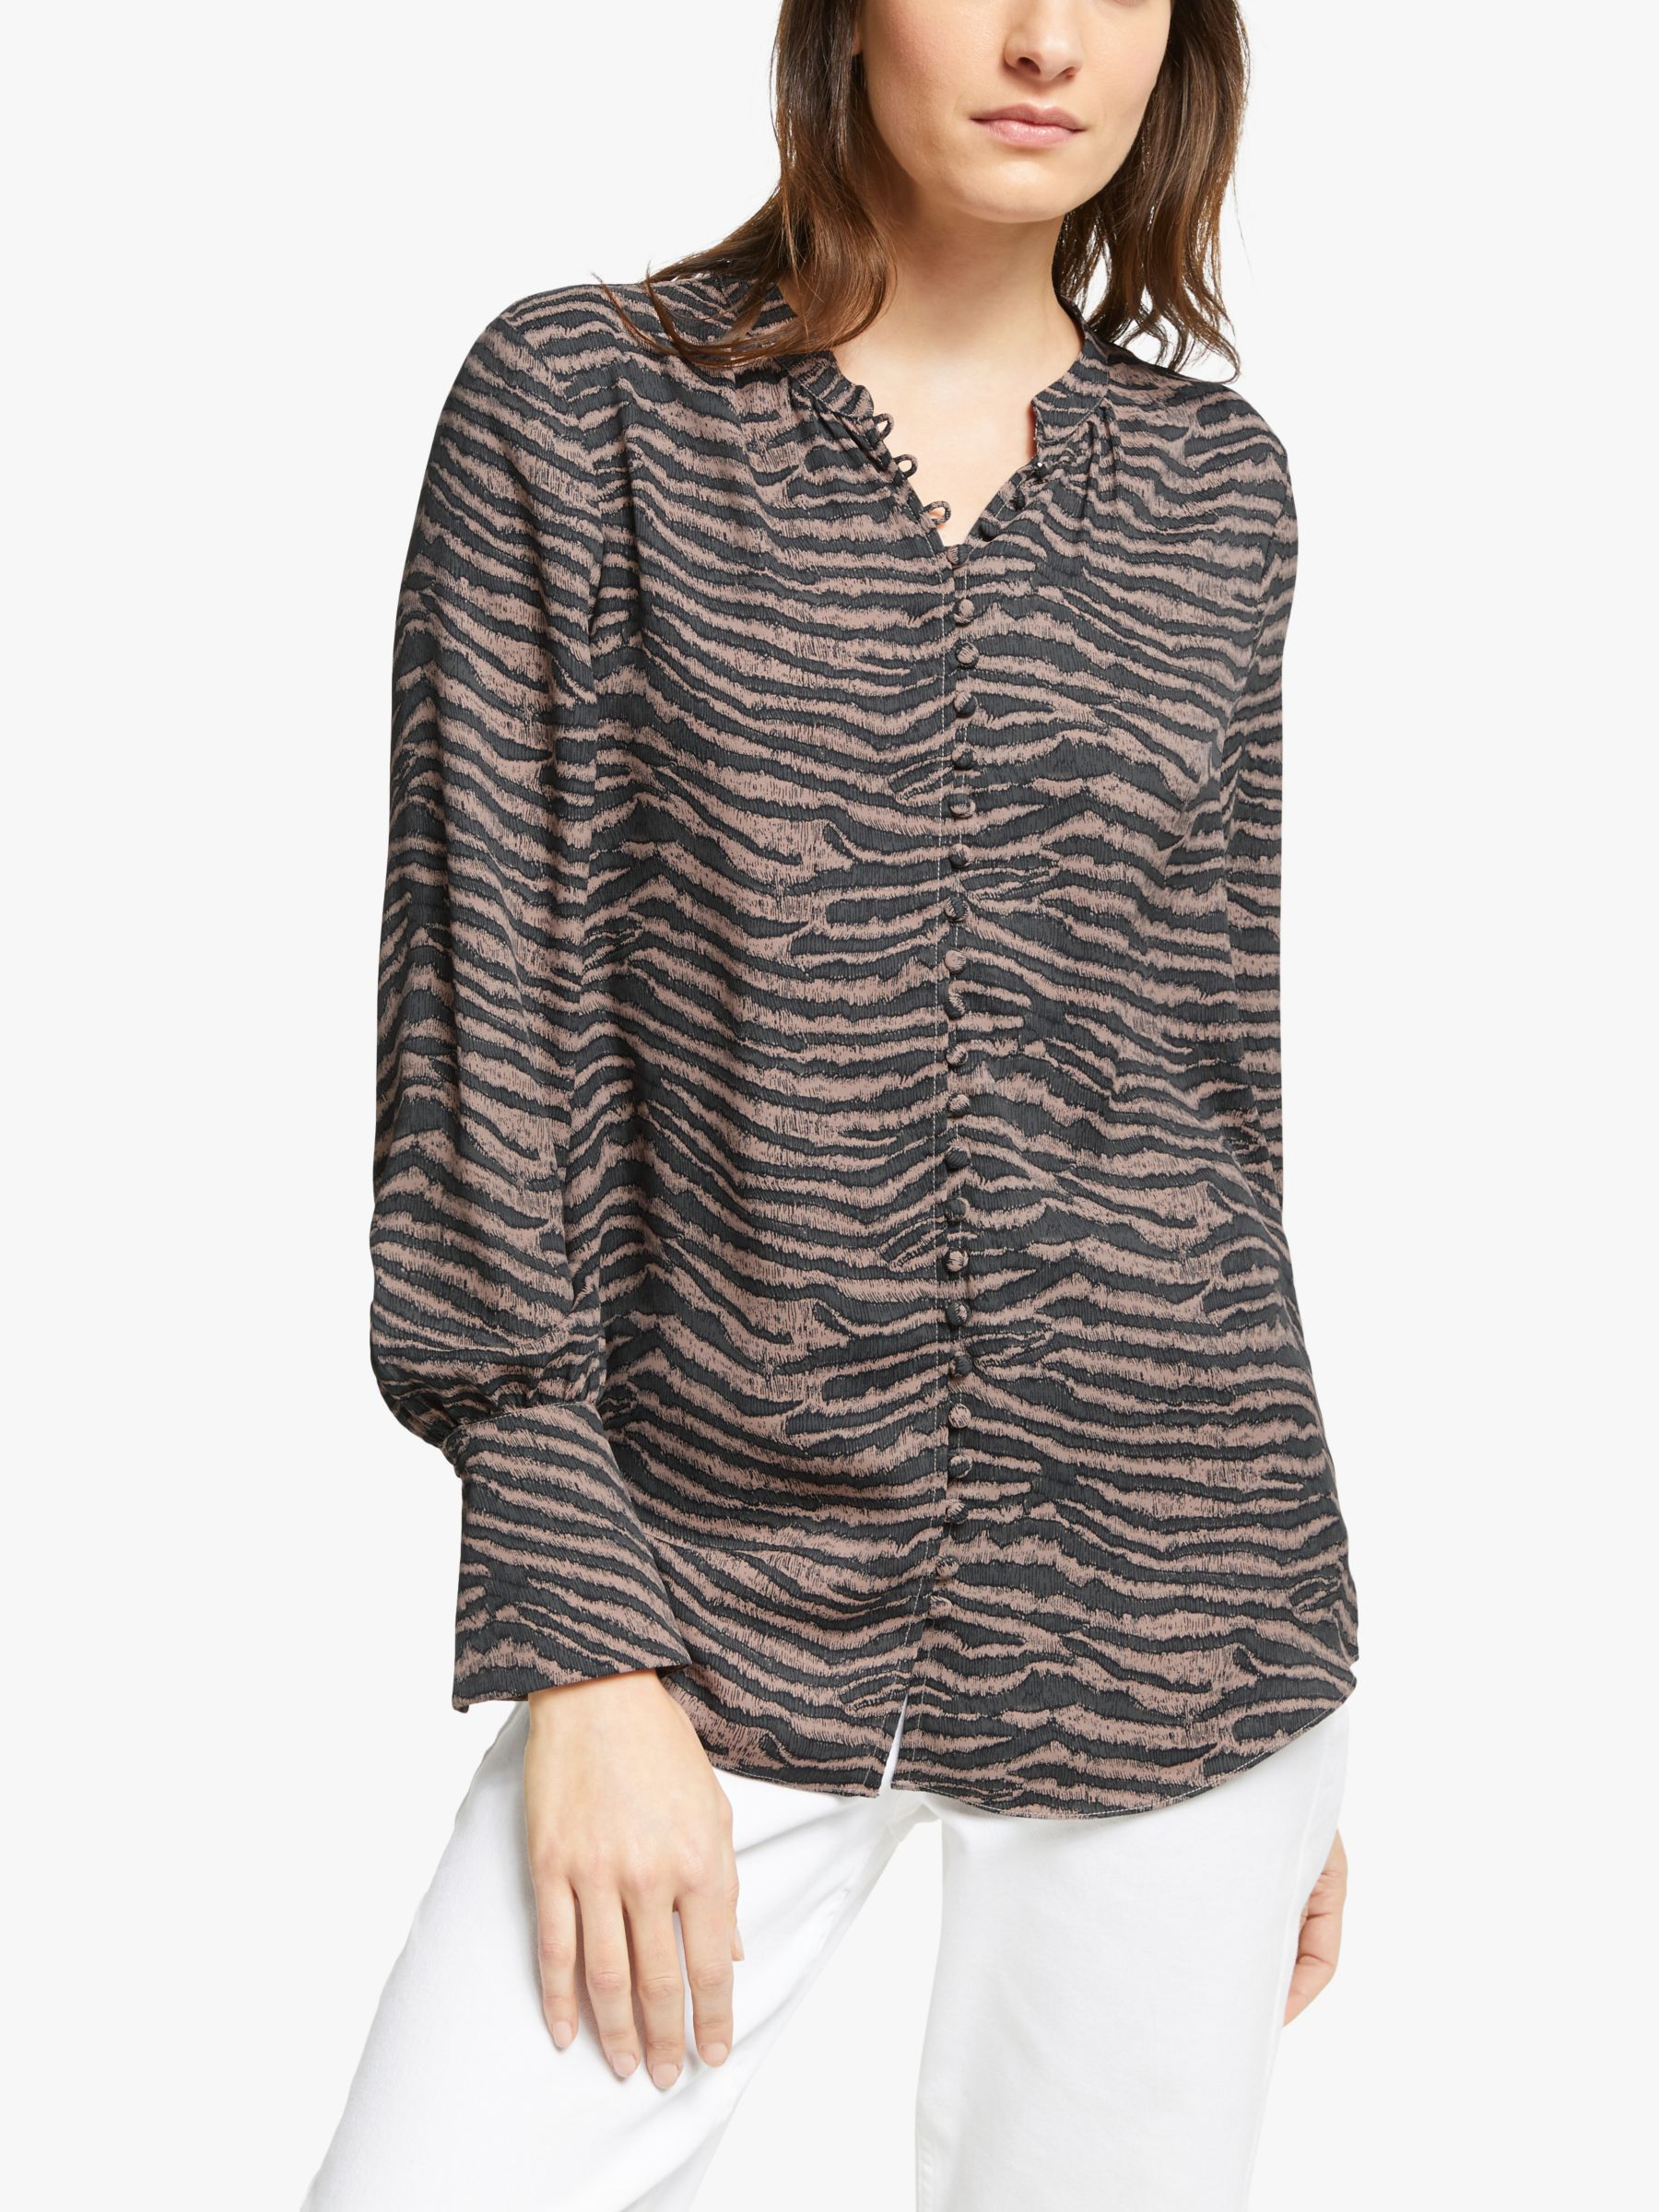 Joie Joie Tariana Animal Print Blouse, Ginger